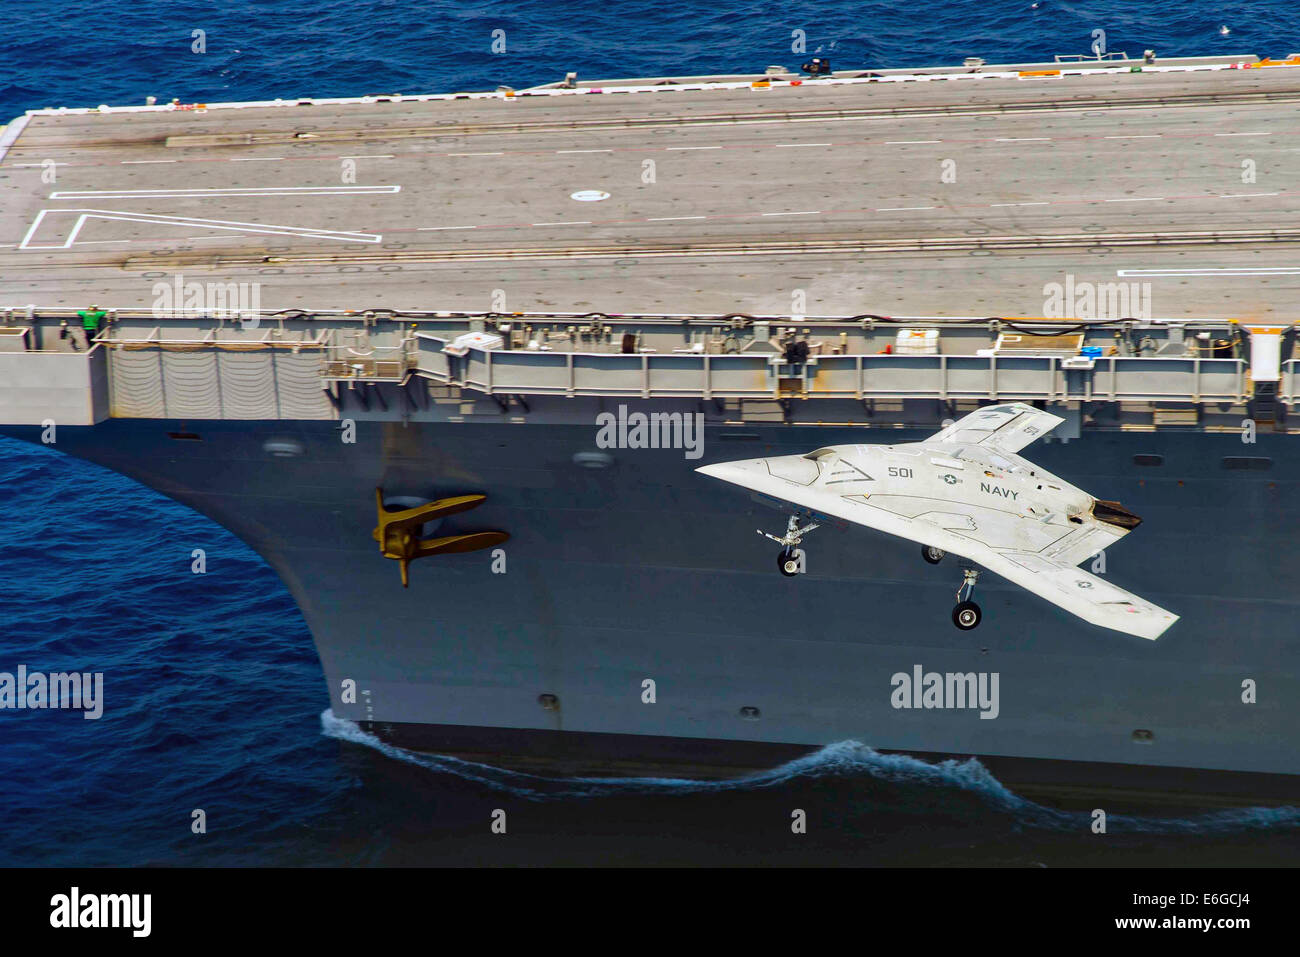 The US Navy X-47B autonomous stealth unmanned aerial vehicle flies past the flight deck of the aircraft carrier - Stock Image